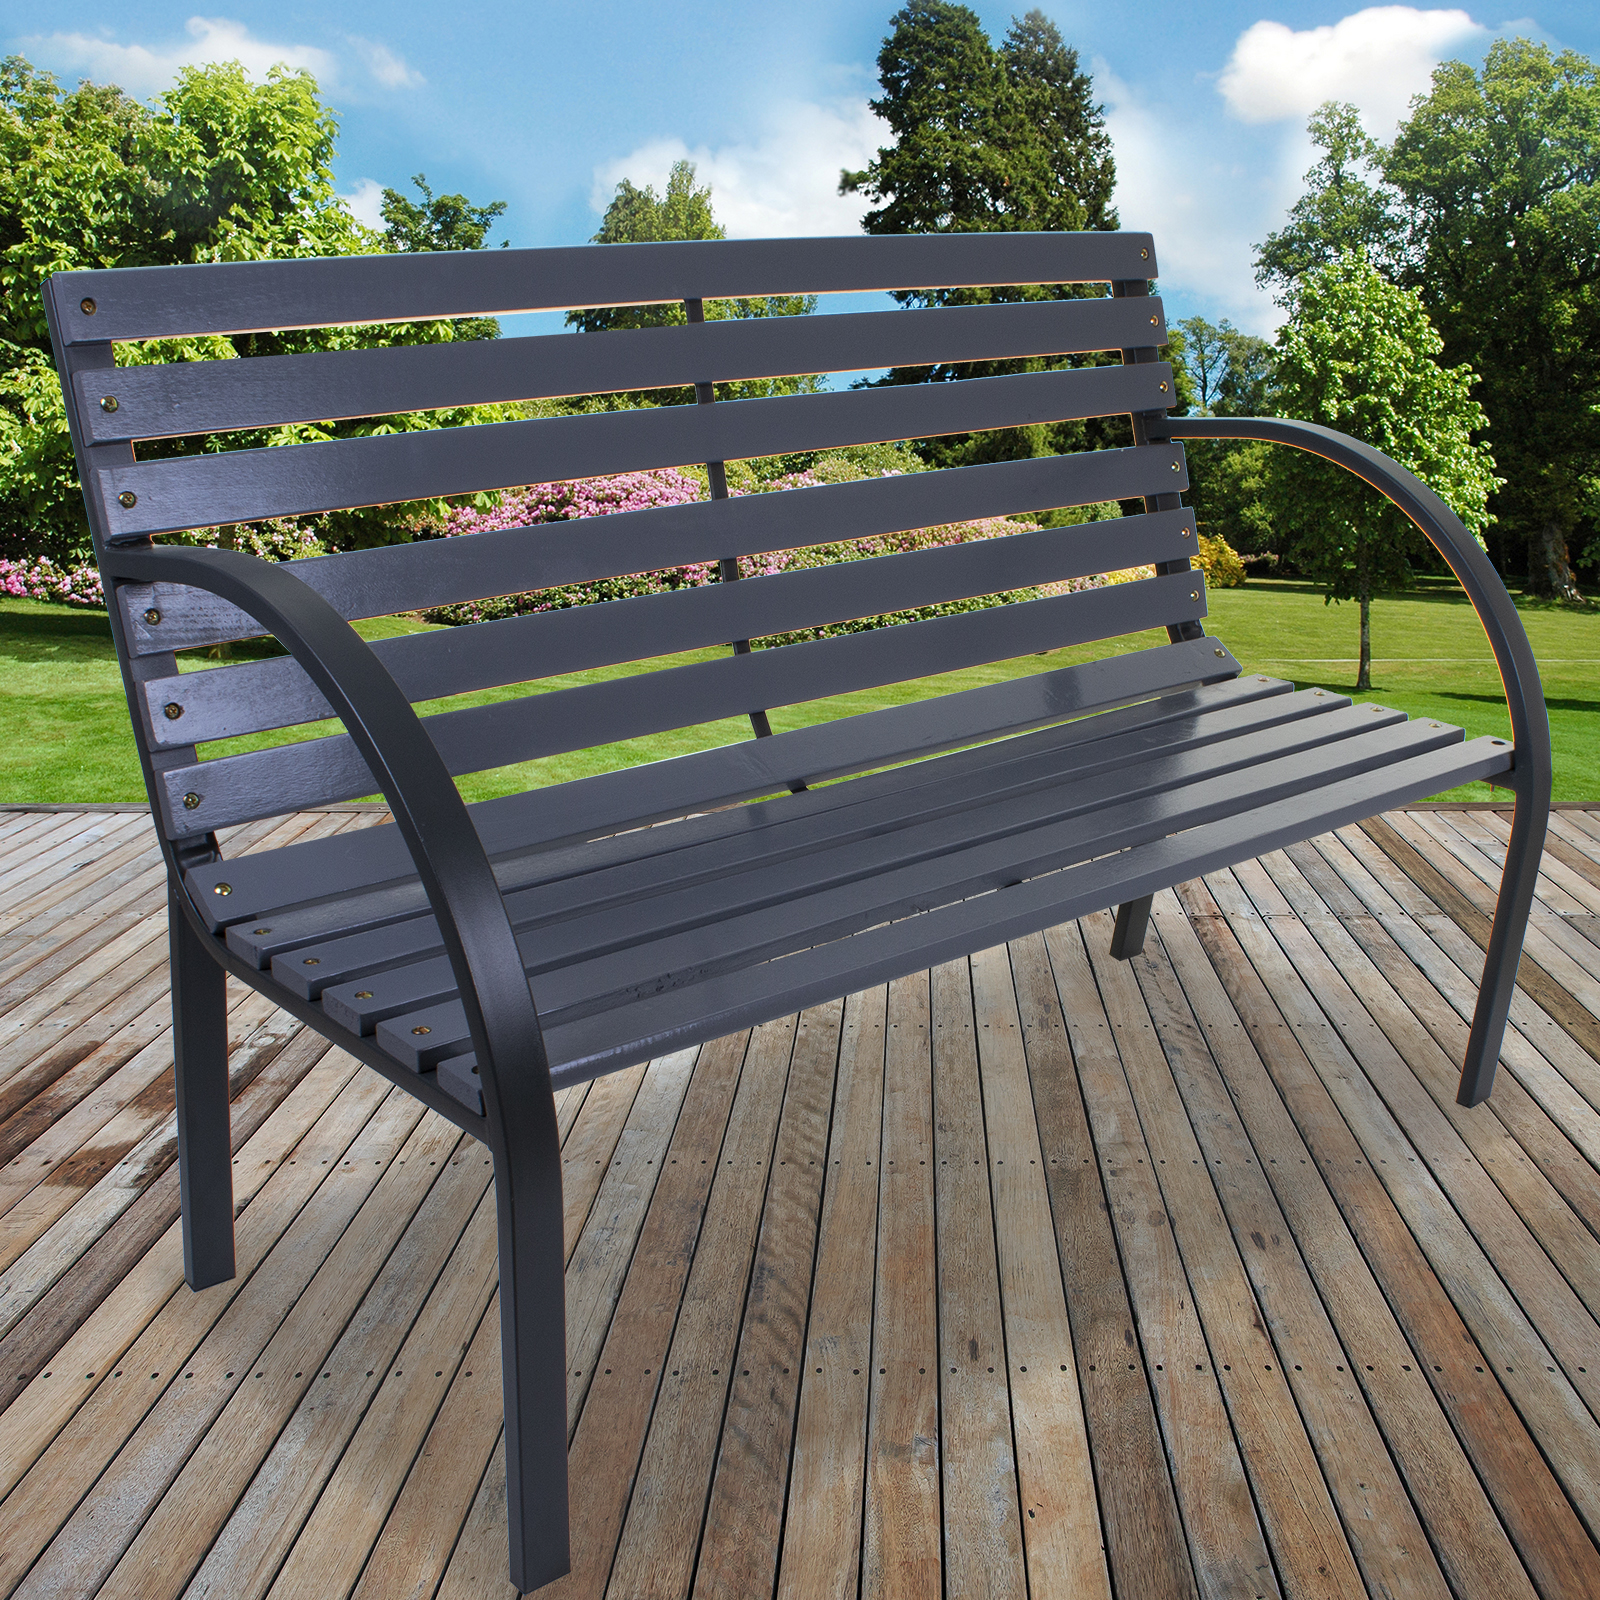 Wondrous Details About Garden Bench Seat Outdoor Seating Grey Slatted Patio Furniture Metal Frame Wood Ncnpc Chair Design For Home Ncnpcorg